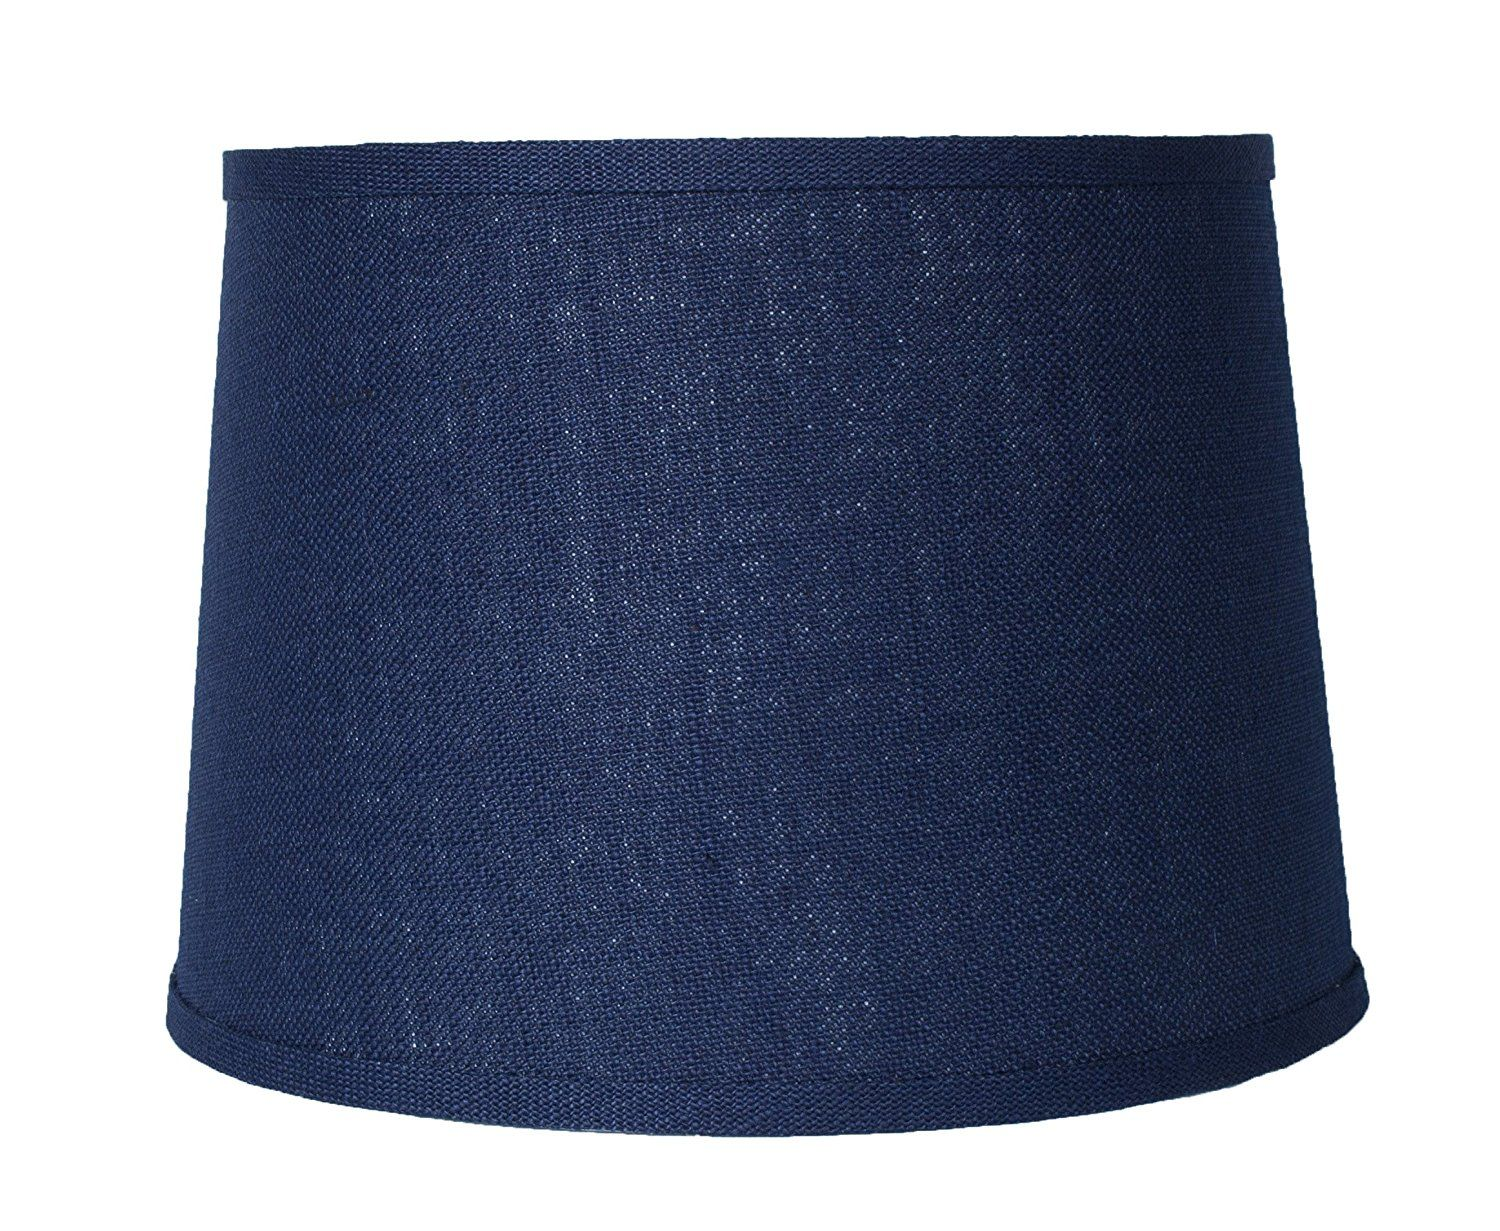 Urbanest blue burlap drum lampshade 10x12x85 spider fitter urbanest blue burlap drum lampshade spider fitter you can get additional details at the image link aloadofball Choice Image